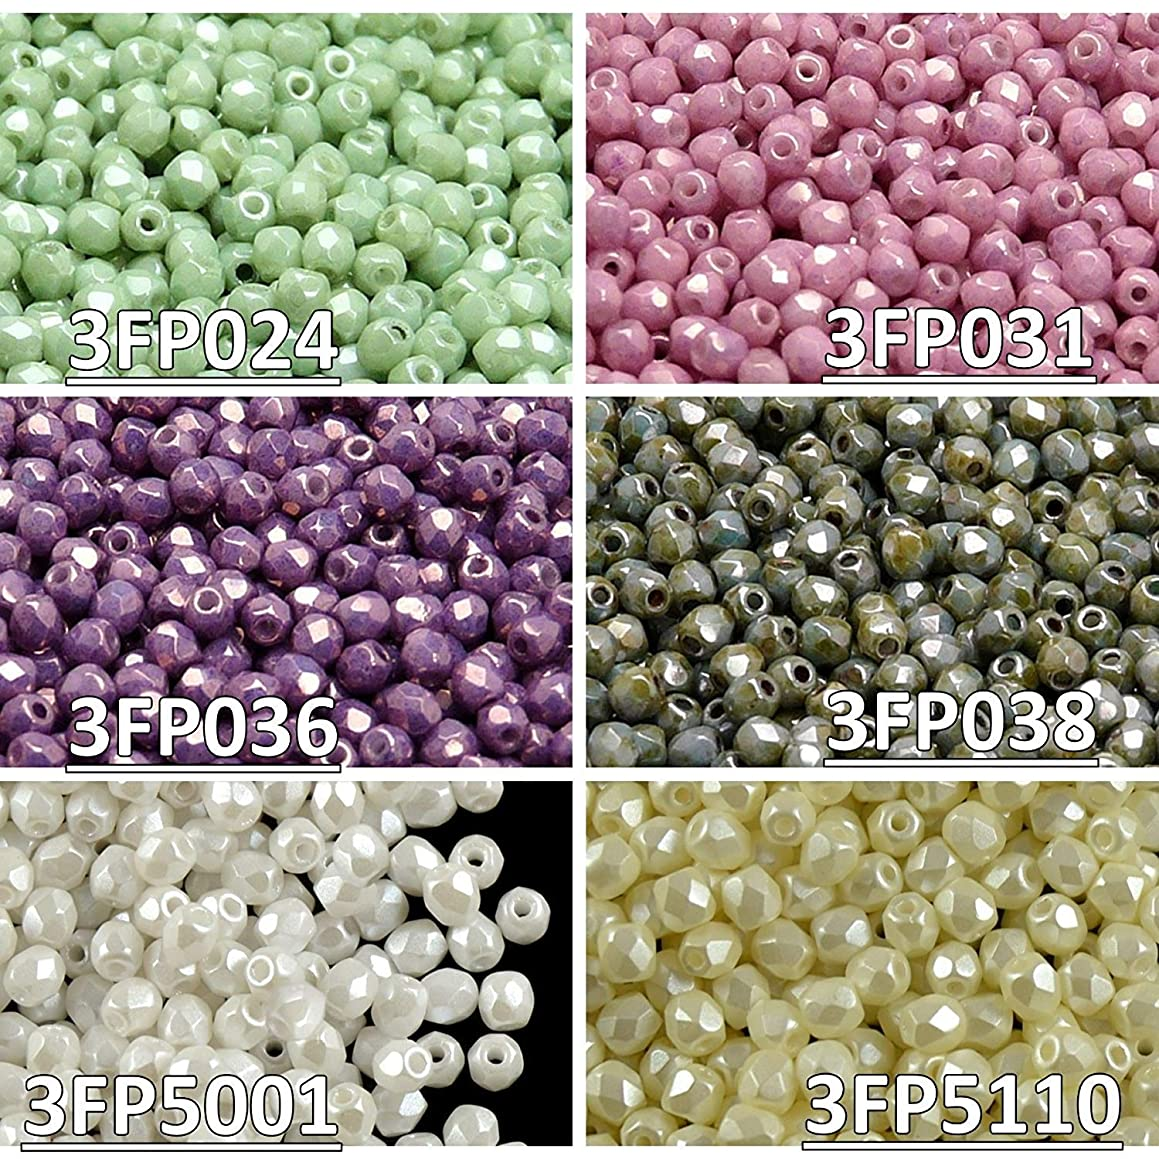 600 beads 6 colors Unique Set 328 Czech Fire-Polished Faceted Glass Beads Round 3 mm, 3FP024 3FP031 3FP036 3FP038 3FP5001 3FP5110